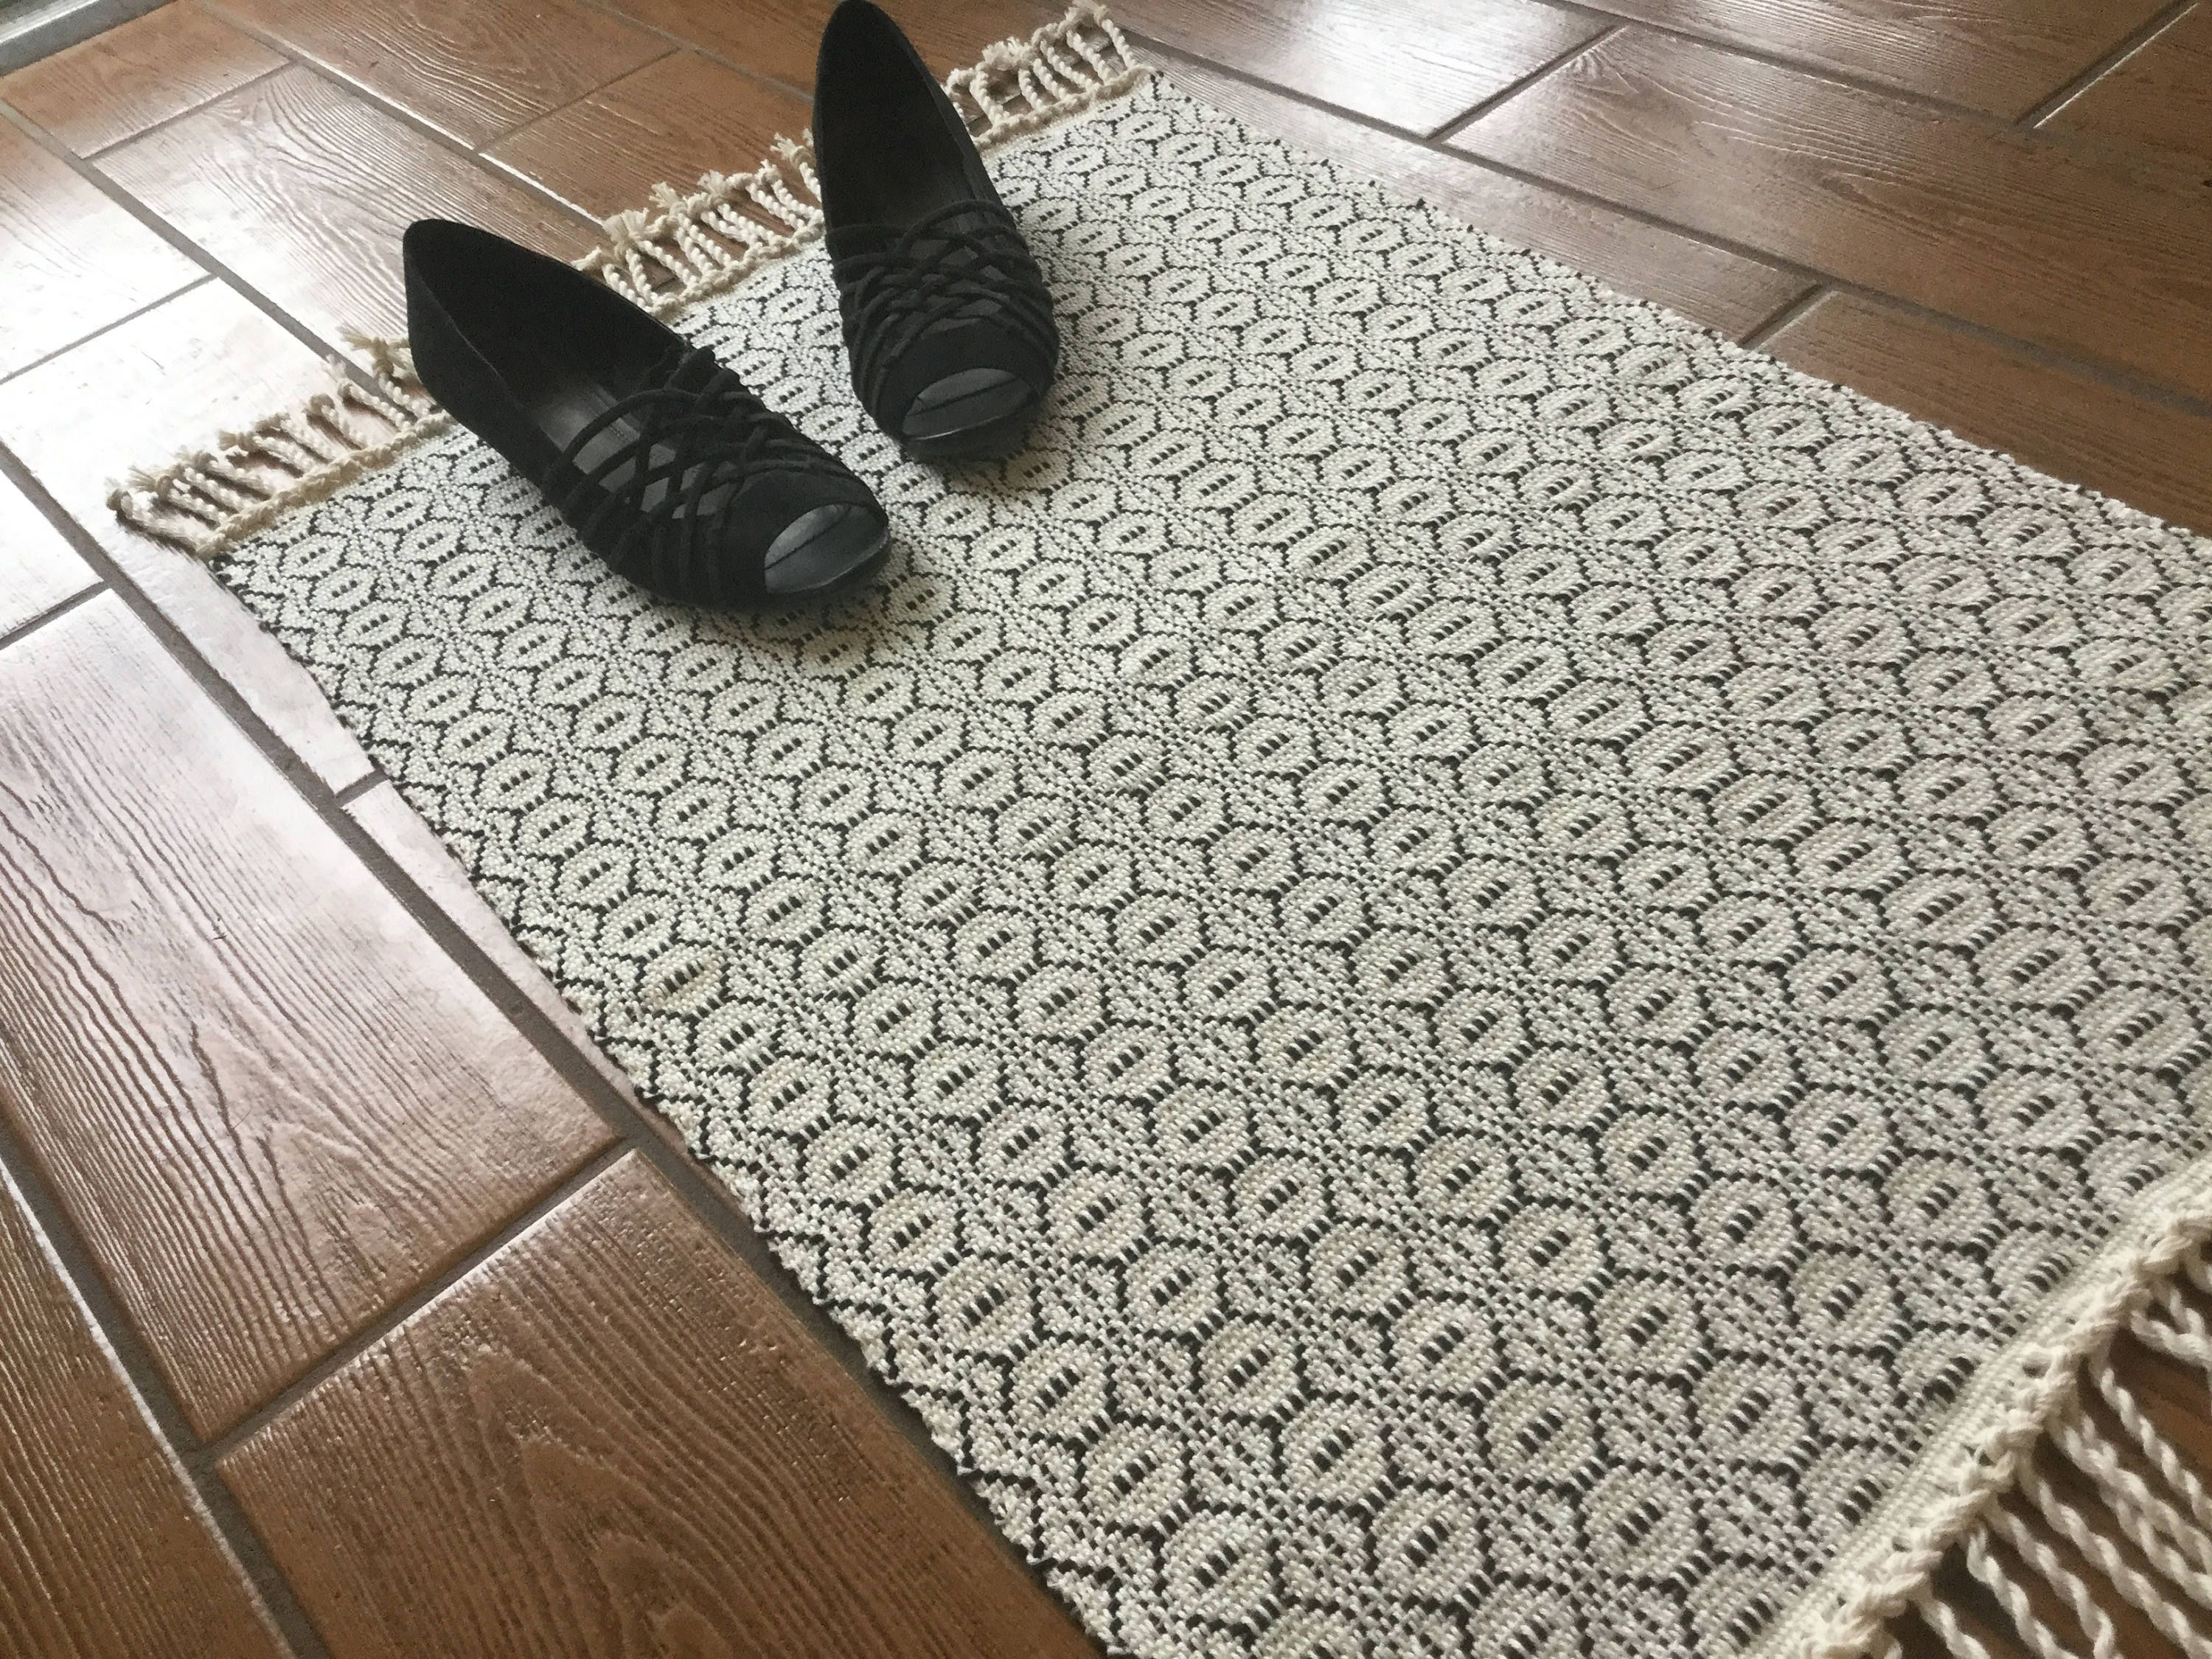 Kitchen Rug Black And White Rug Cotton Anniversary Gift Etsy Rugs Rugs In Living Room Cotton Rug